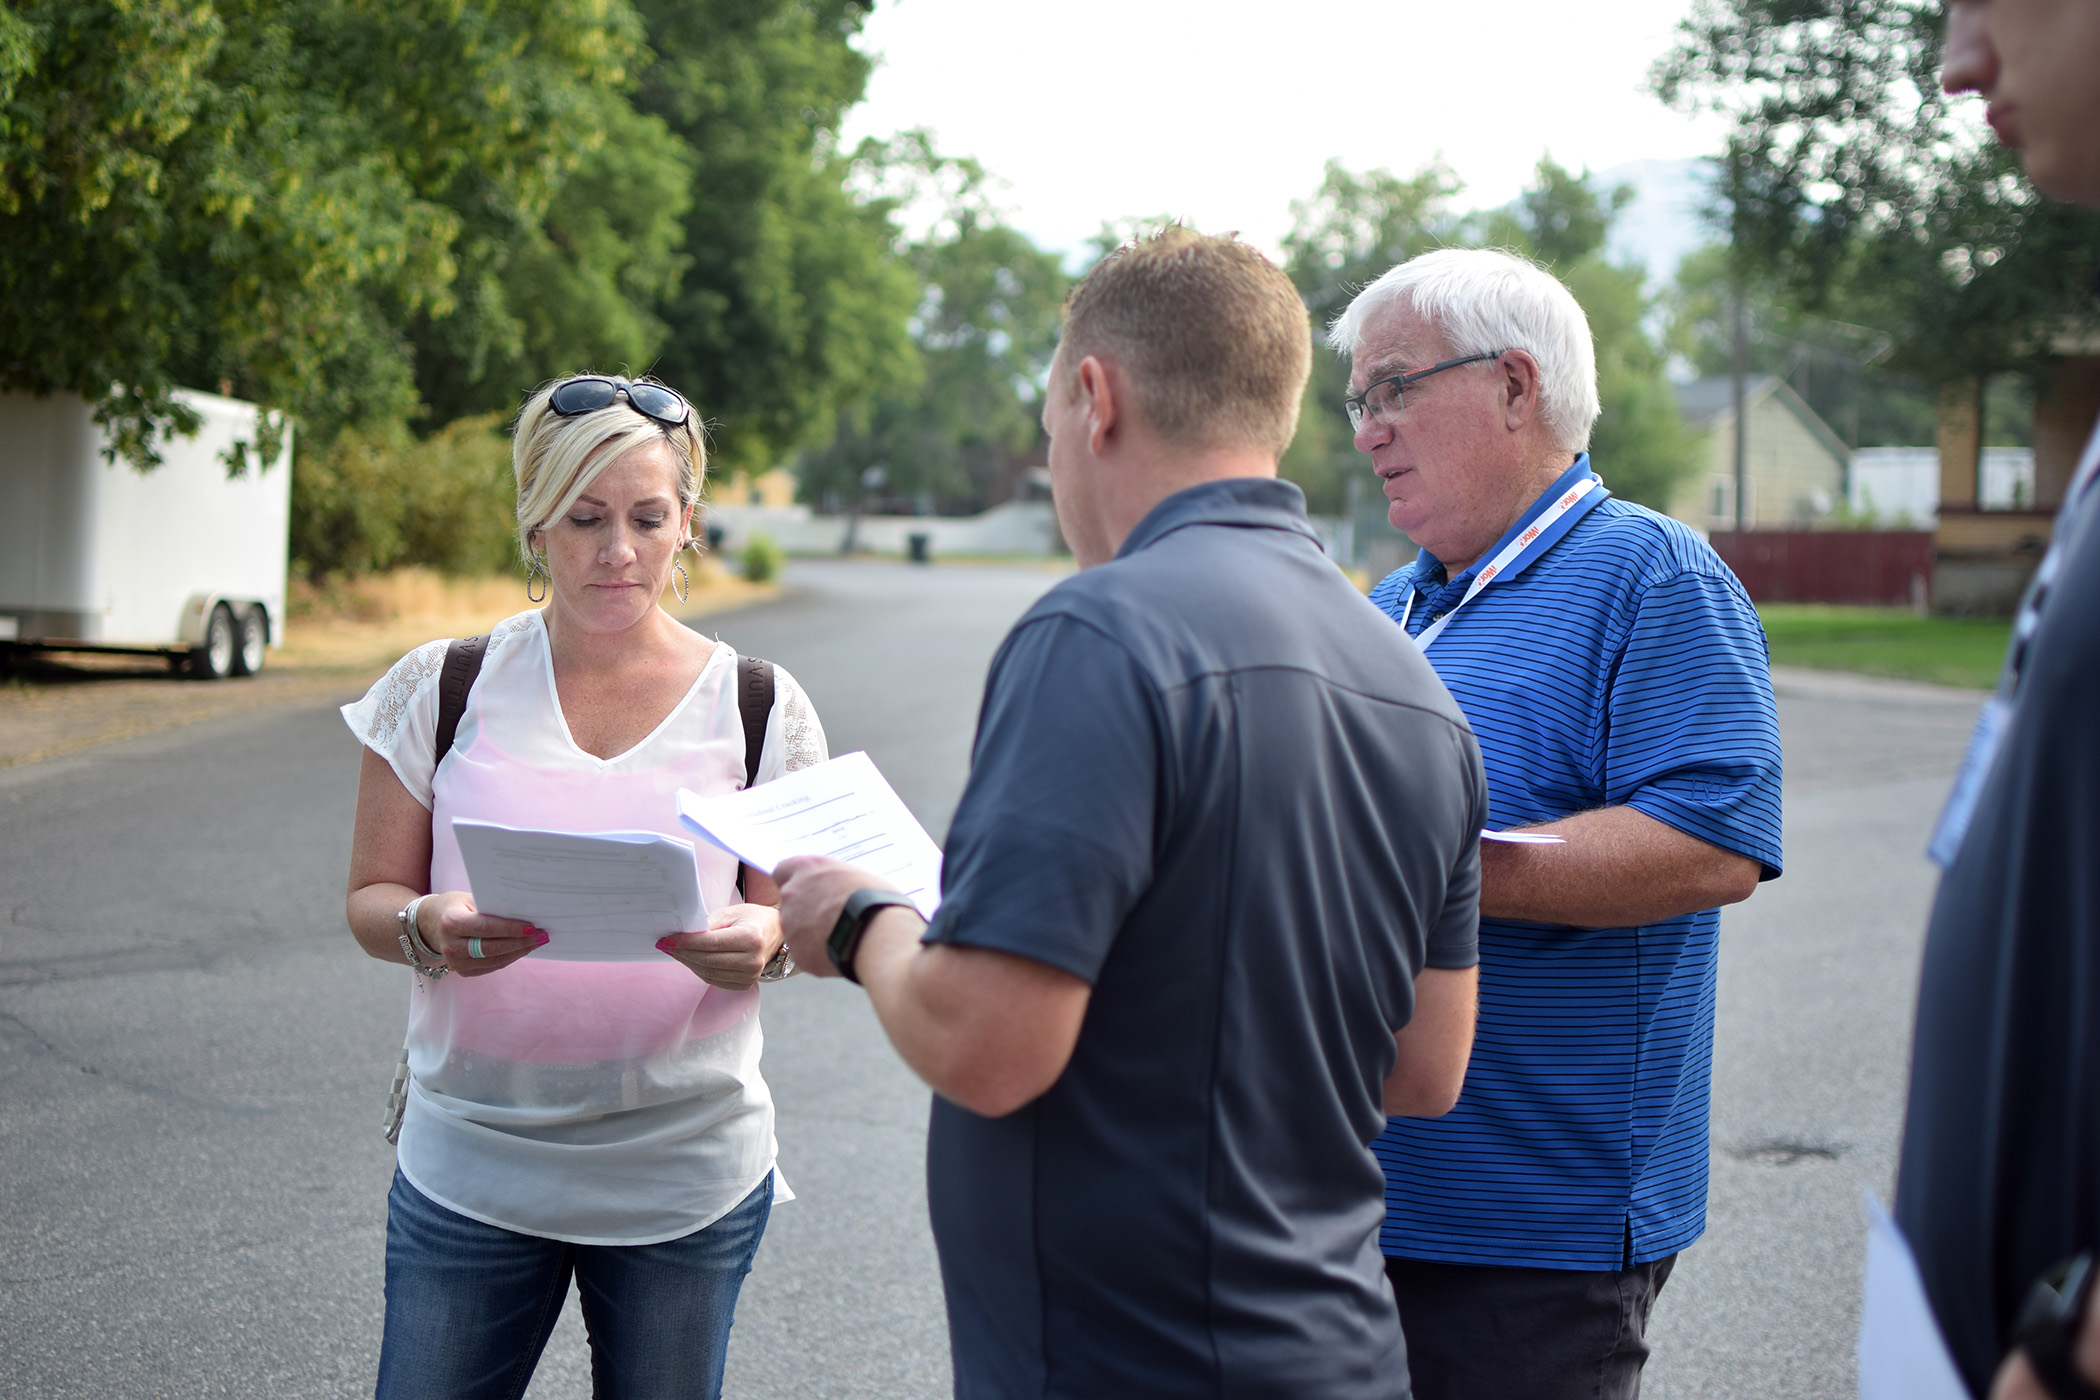 3 People doing a road assessment survey